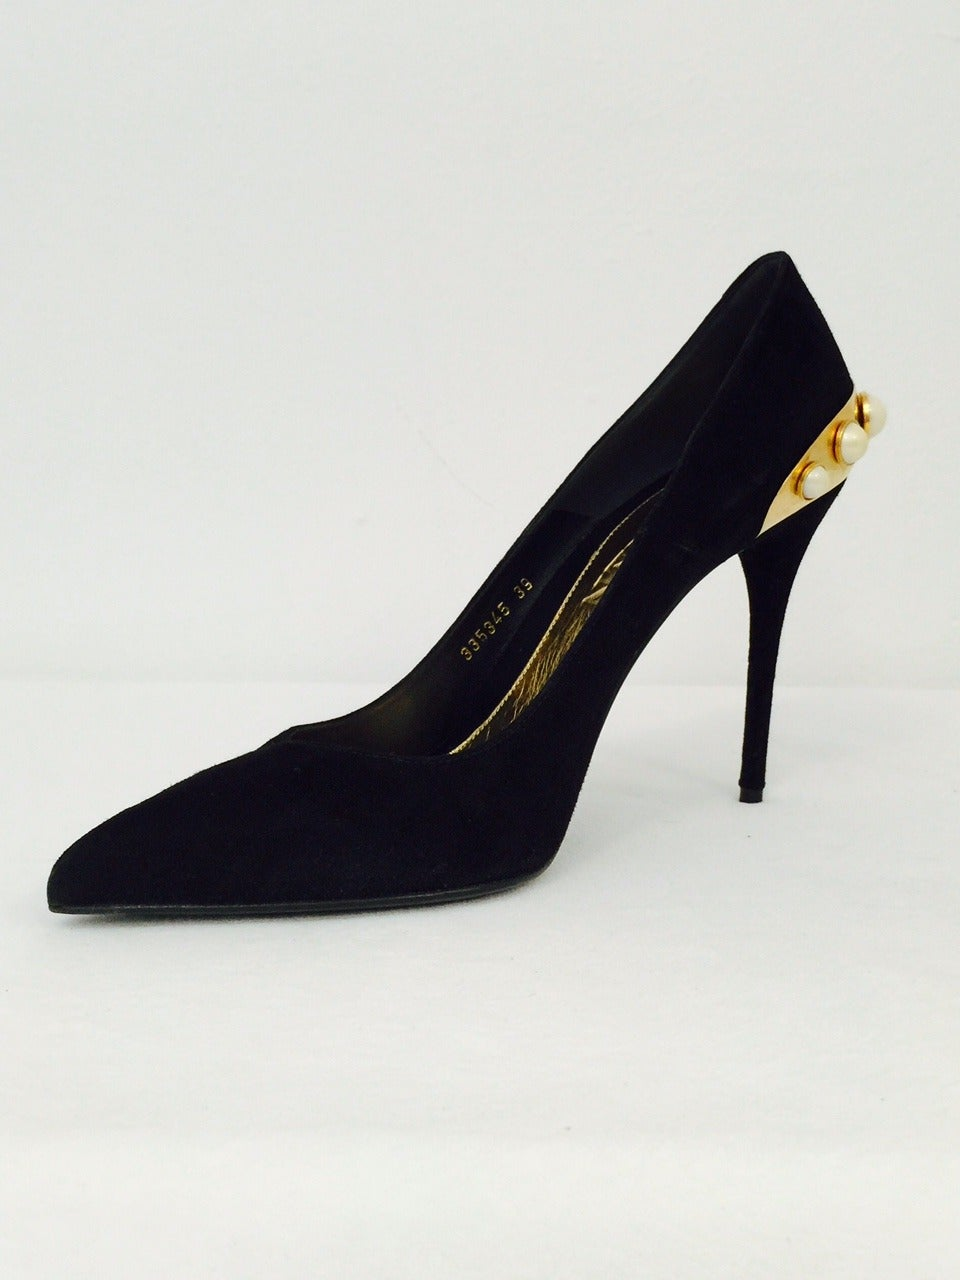 Awe-Inspiring Alexander McQueen Black Suede Evening Pumps with Pearls 2